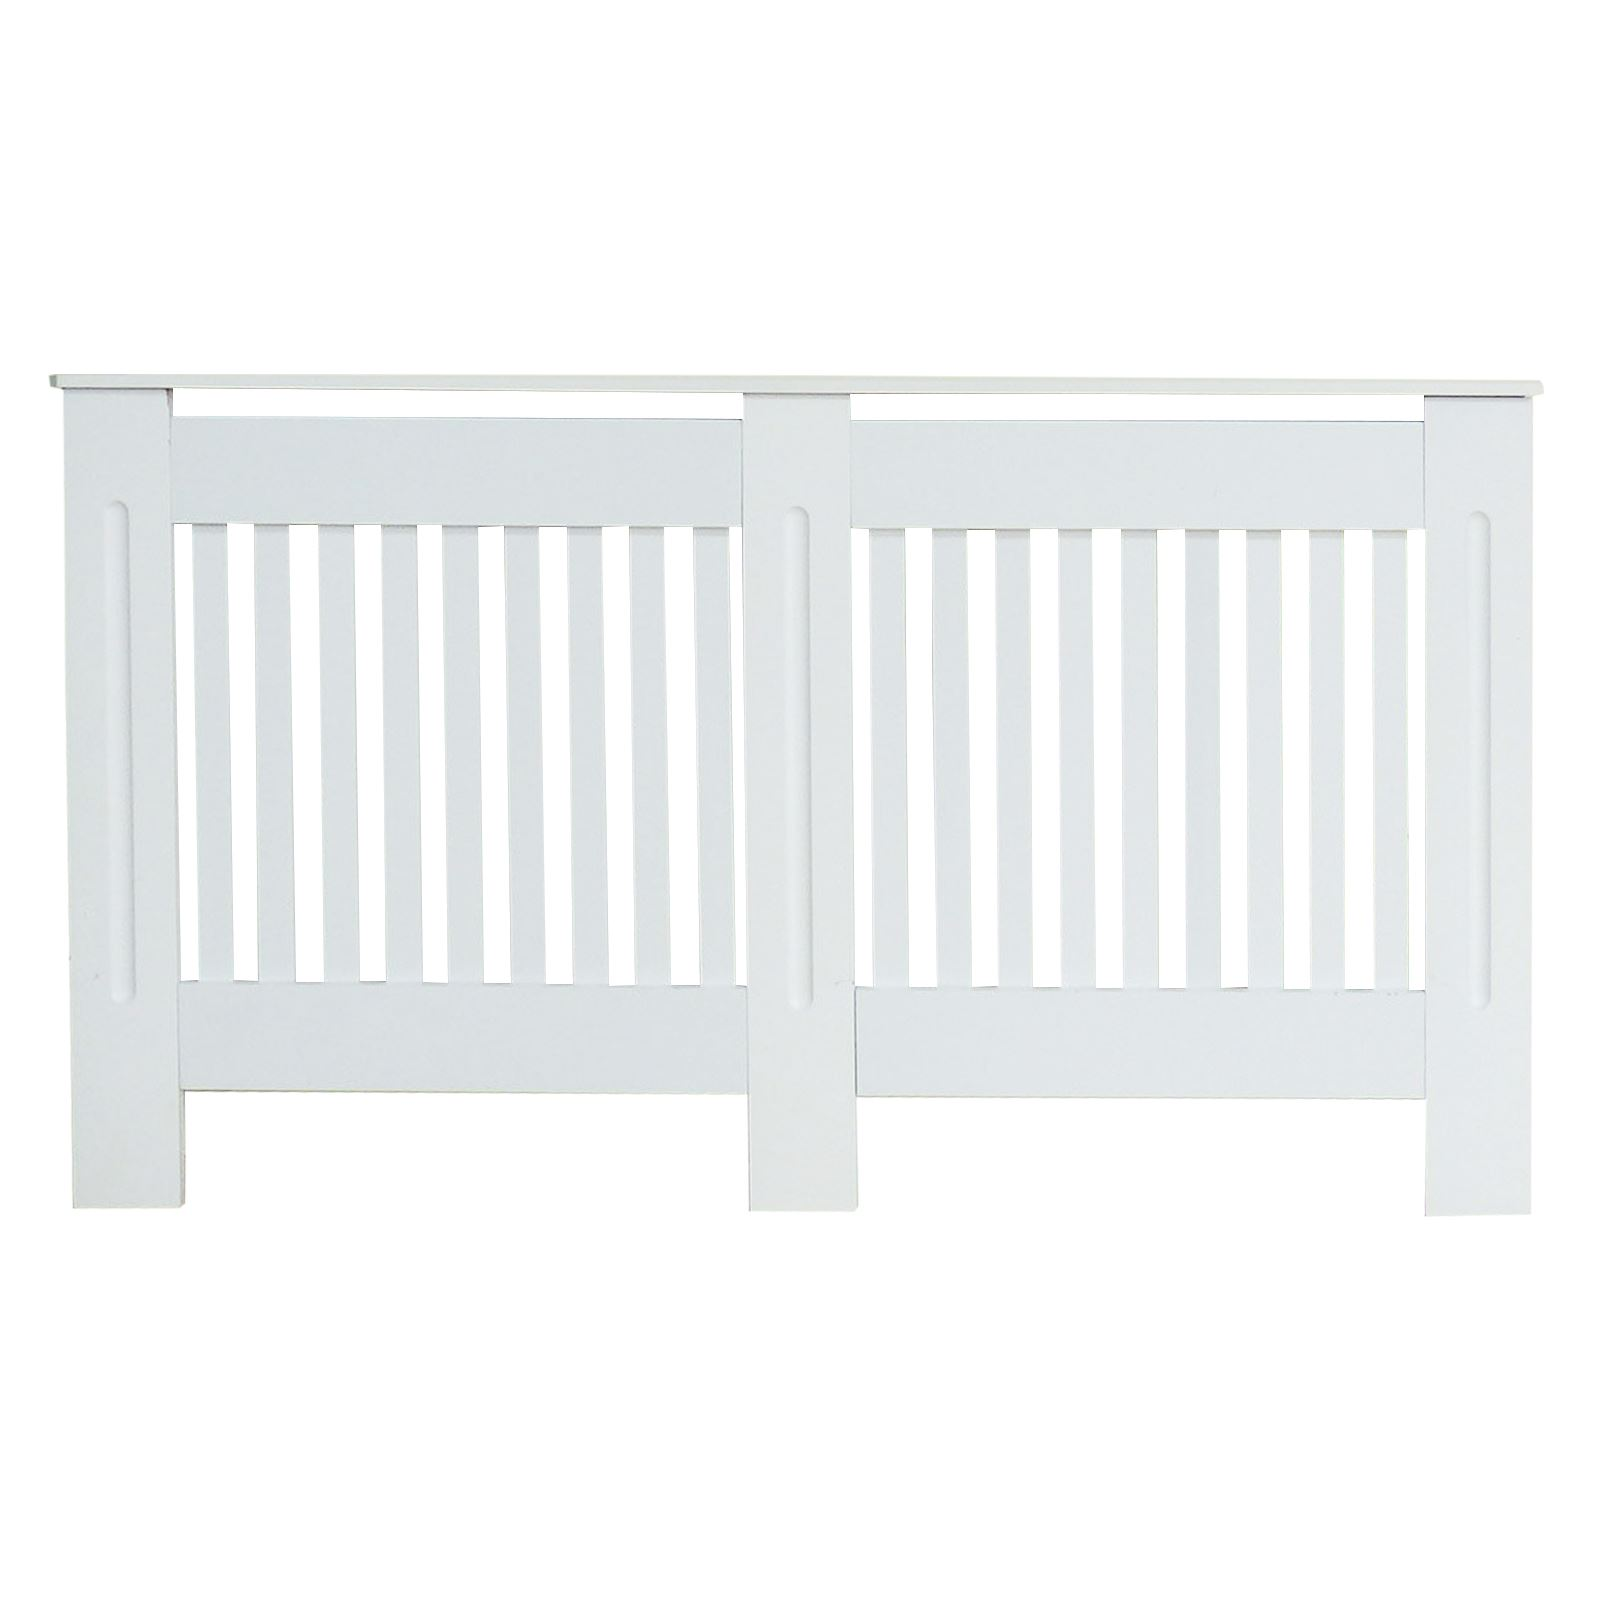 Traditional-Radiator-Cover-Cabinet-Vertical-Slatted-MDF-Wood-Small-Large-Unit thumbnail 5